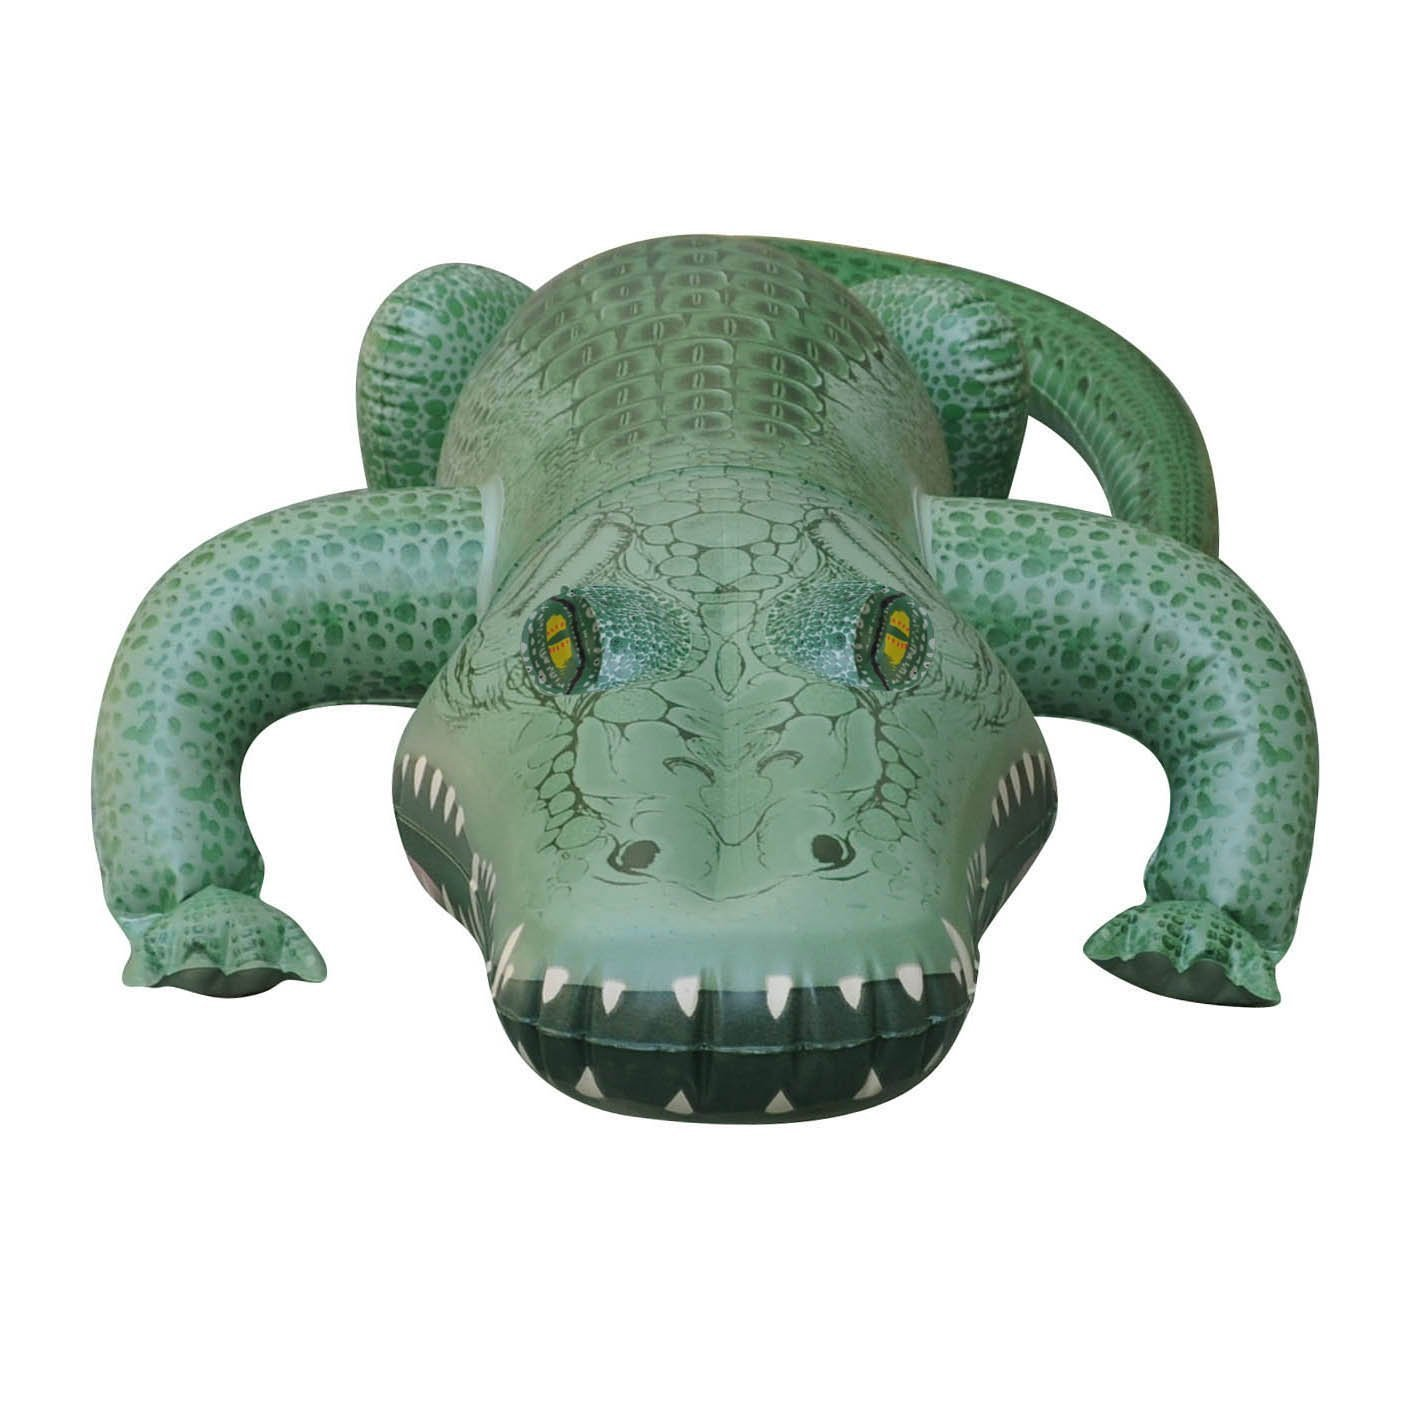 Buy 62 L X 28 W X 12 H Inflatable Crocodile Inflatable Alligator Large  Inflatable Outdoor Play Animals Toys By Jet Creations Online At Low Prices  In India ...